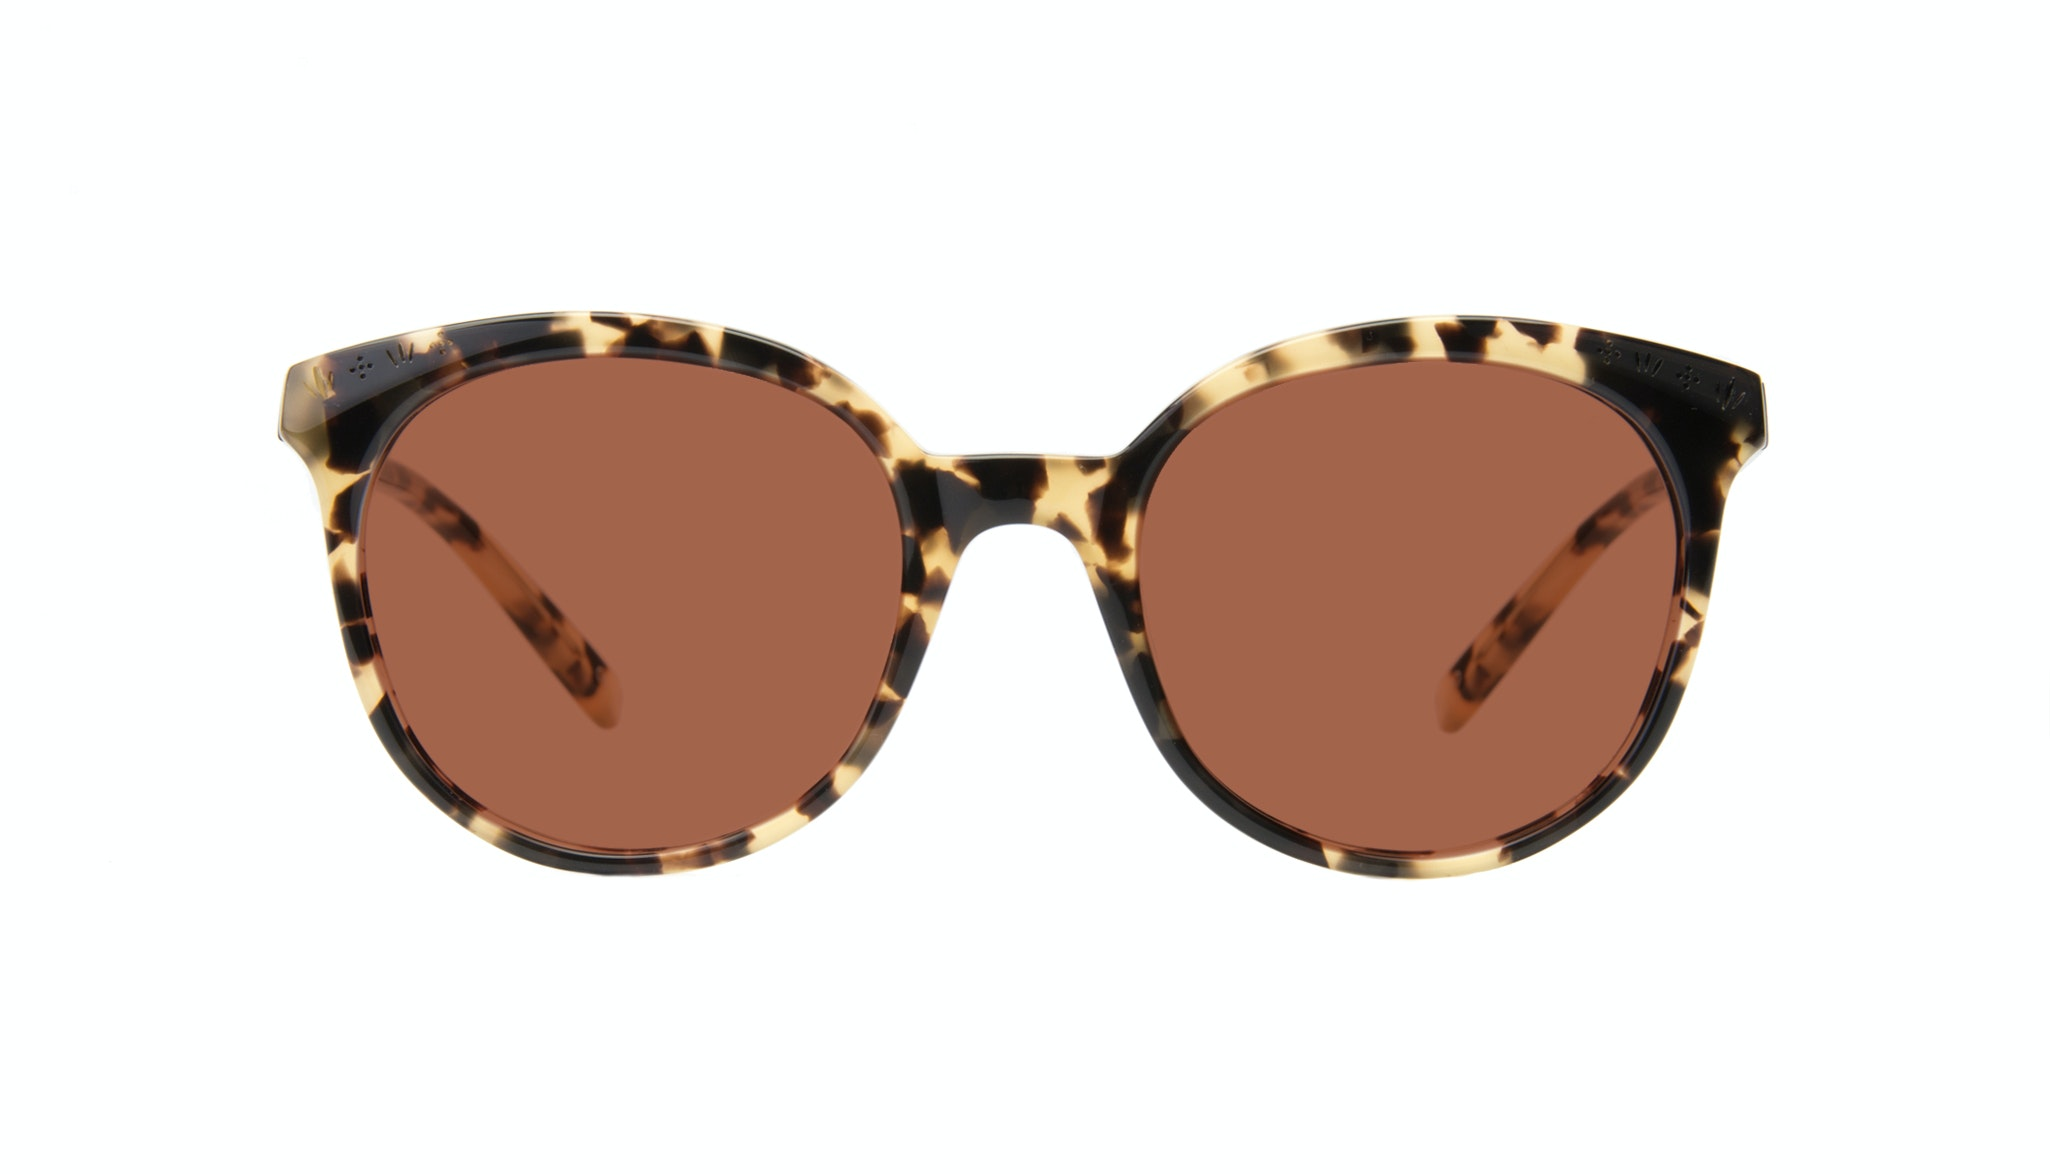 Affordable Fashion Glasses Round Sunglasses Women Must Tortoise Front